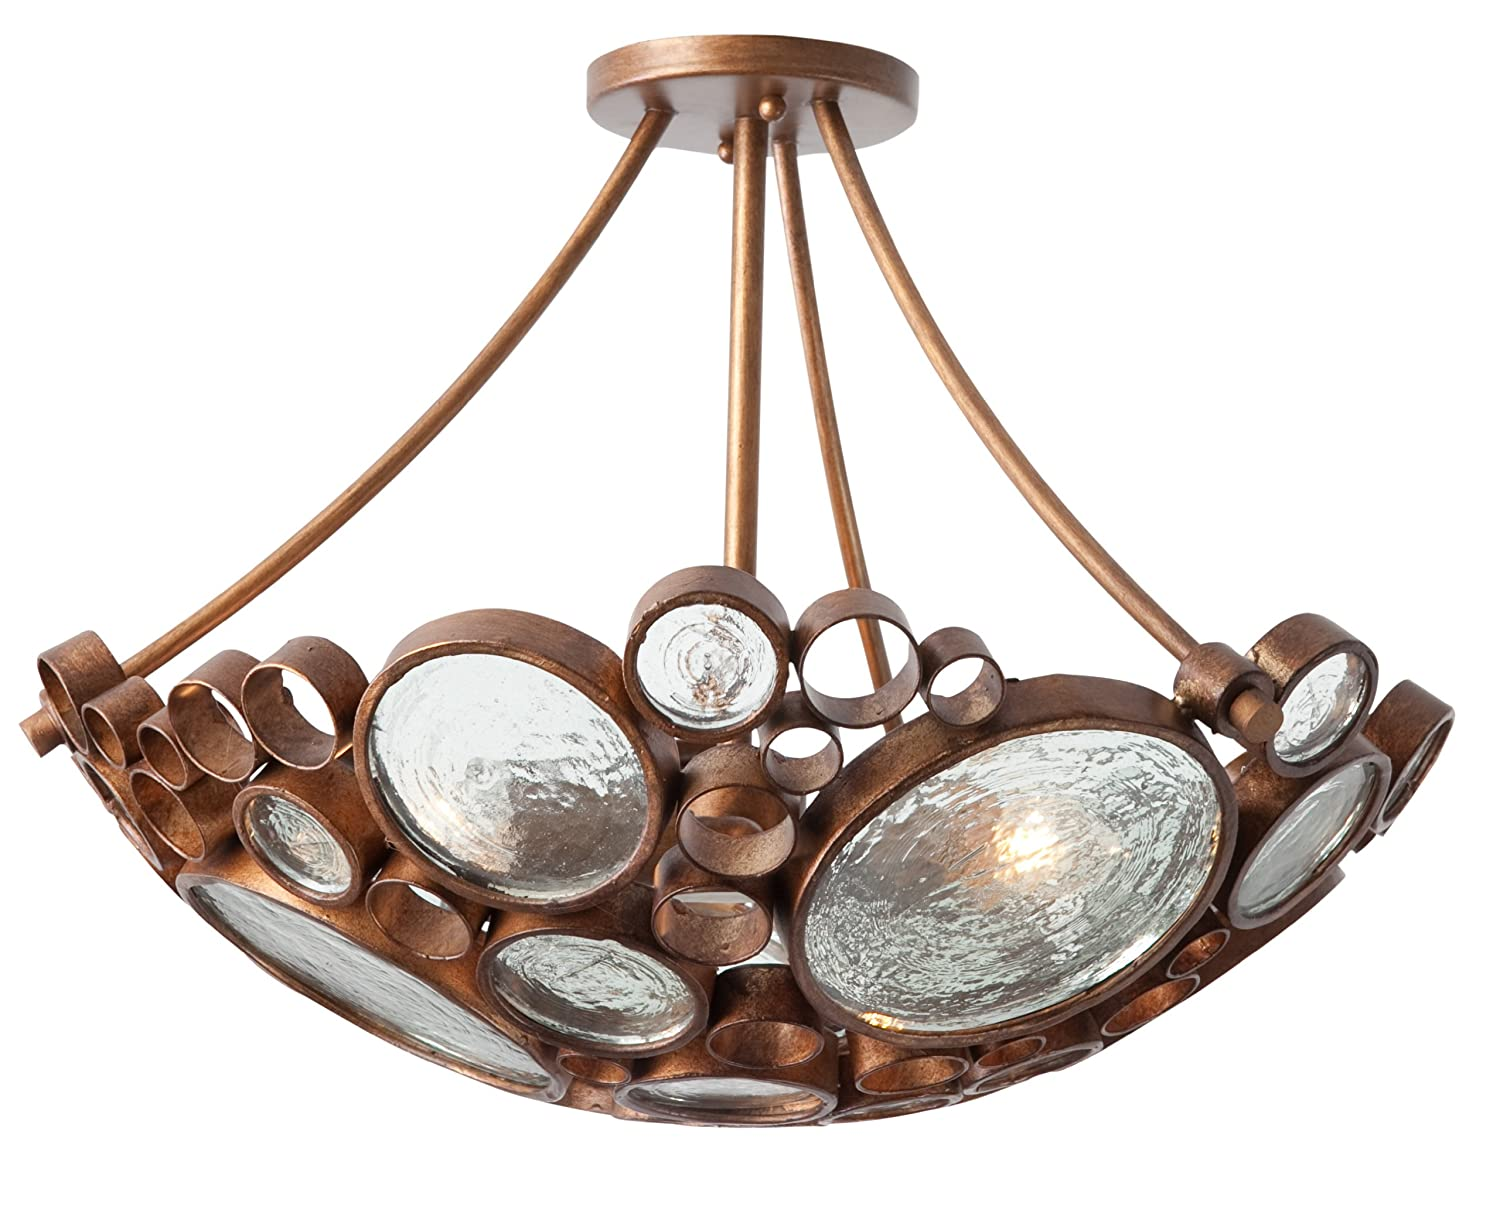 varaluz sho fascination collection light semiflush  - varaluz sho fascination collection light semiflush hammered orefinish with recycled bottle glass shade inch by inch  semi flushmount